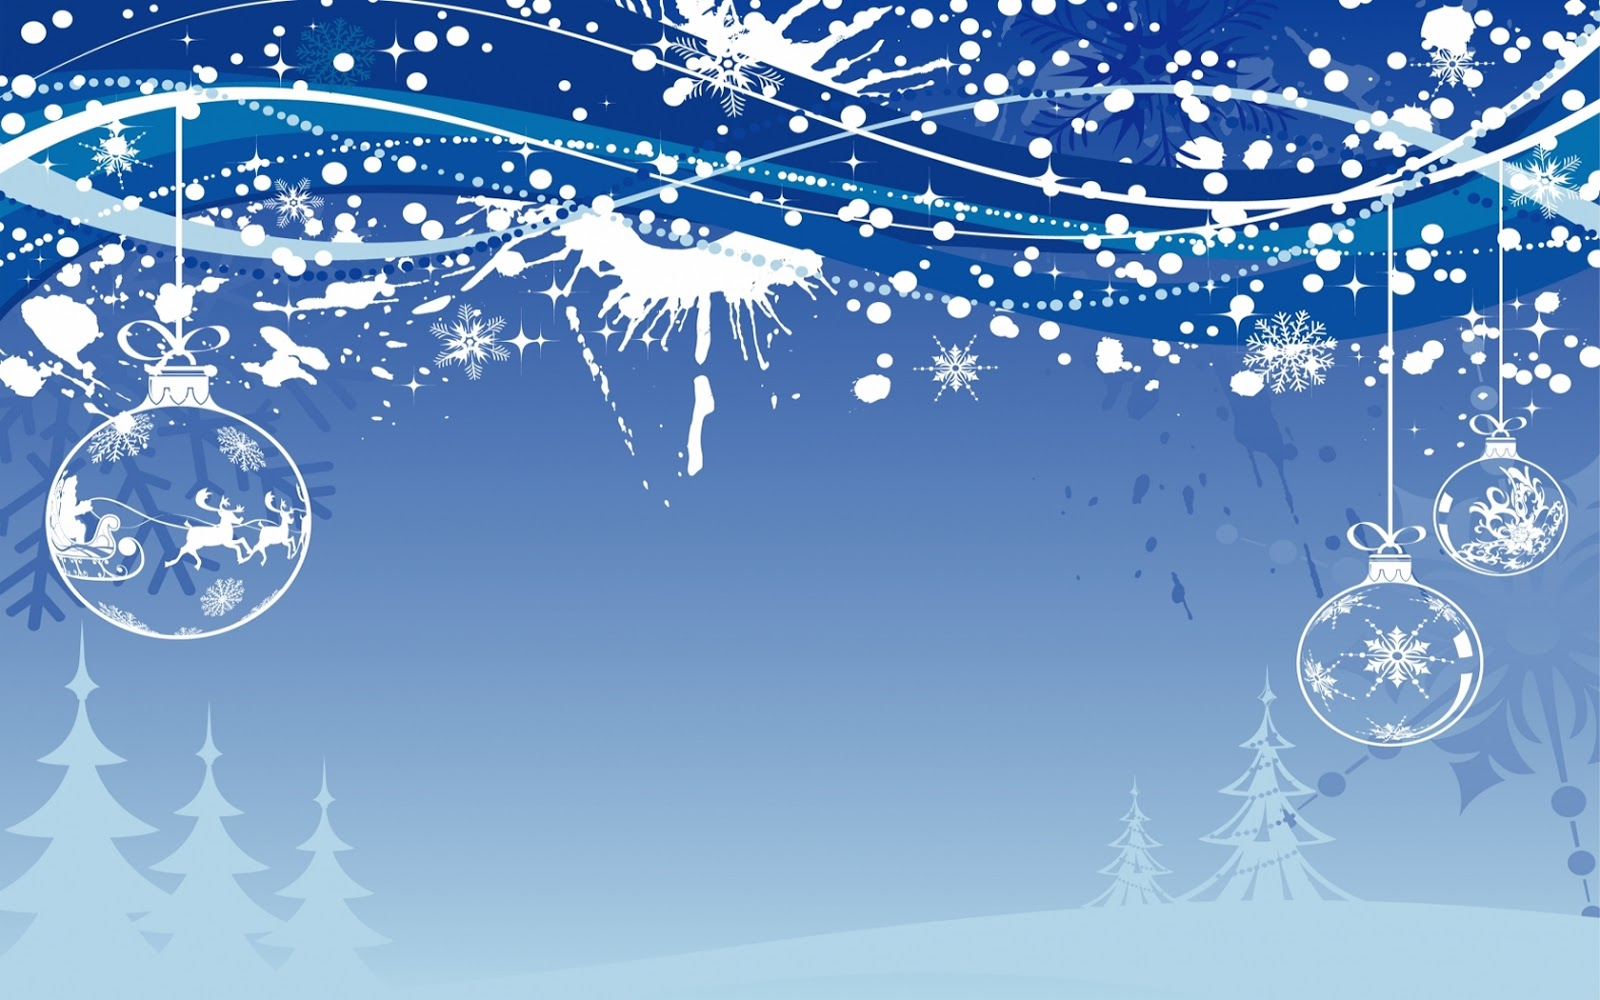 Moving clipart snowflake Animated clipart desktop Zone Cliparts